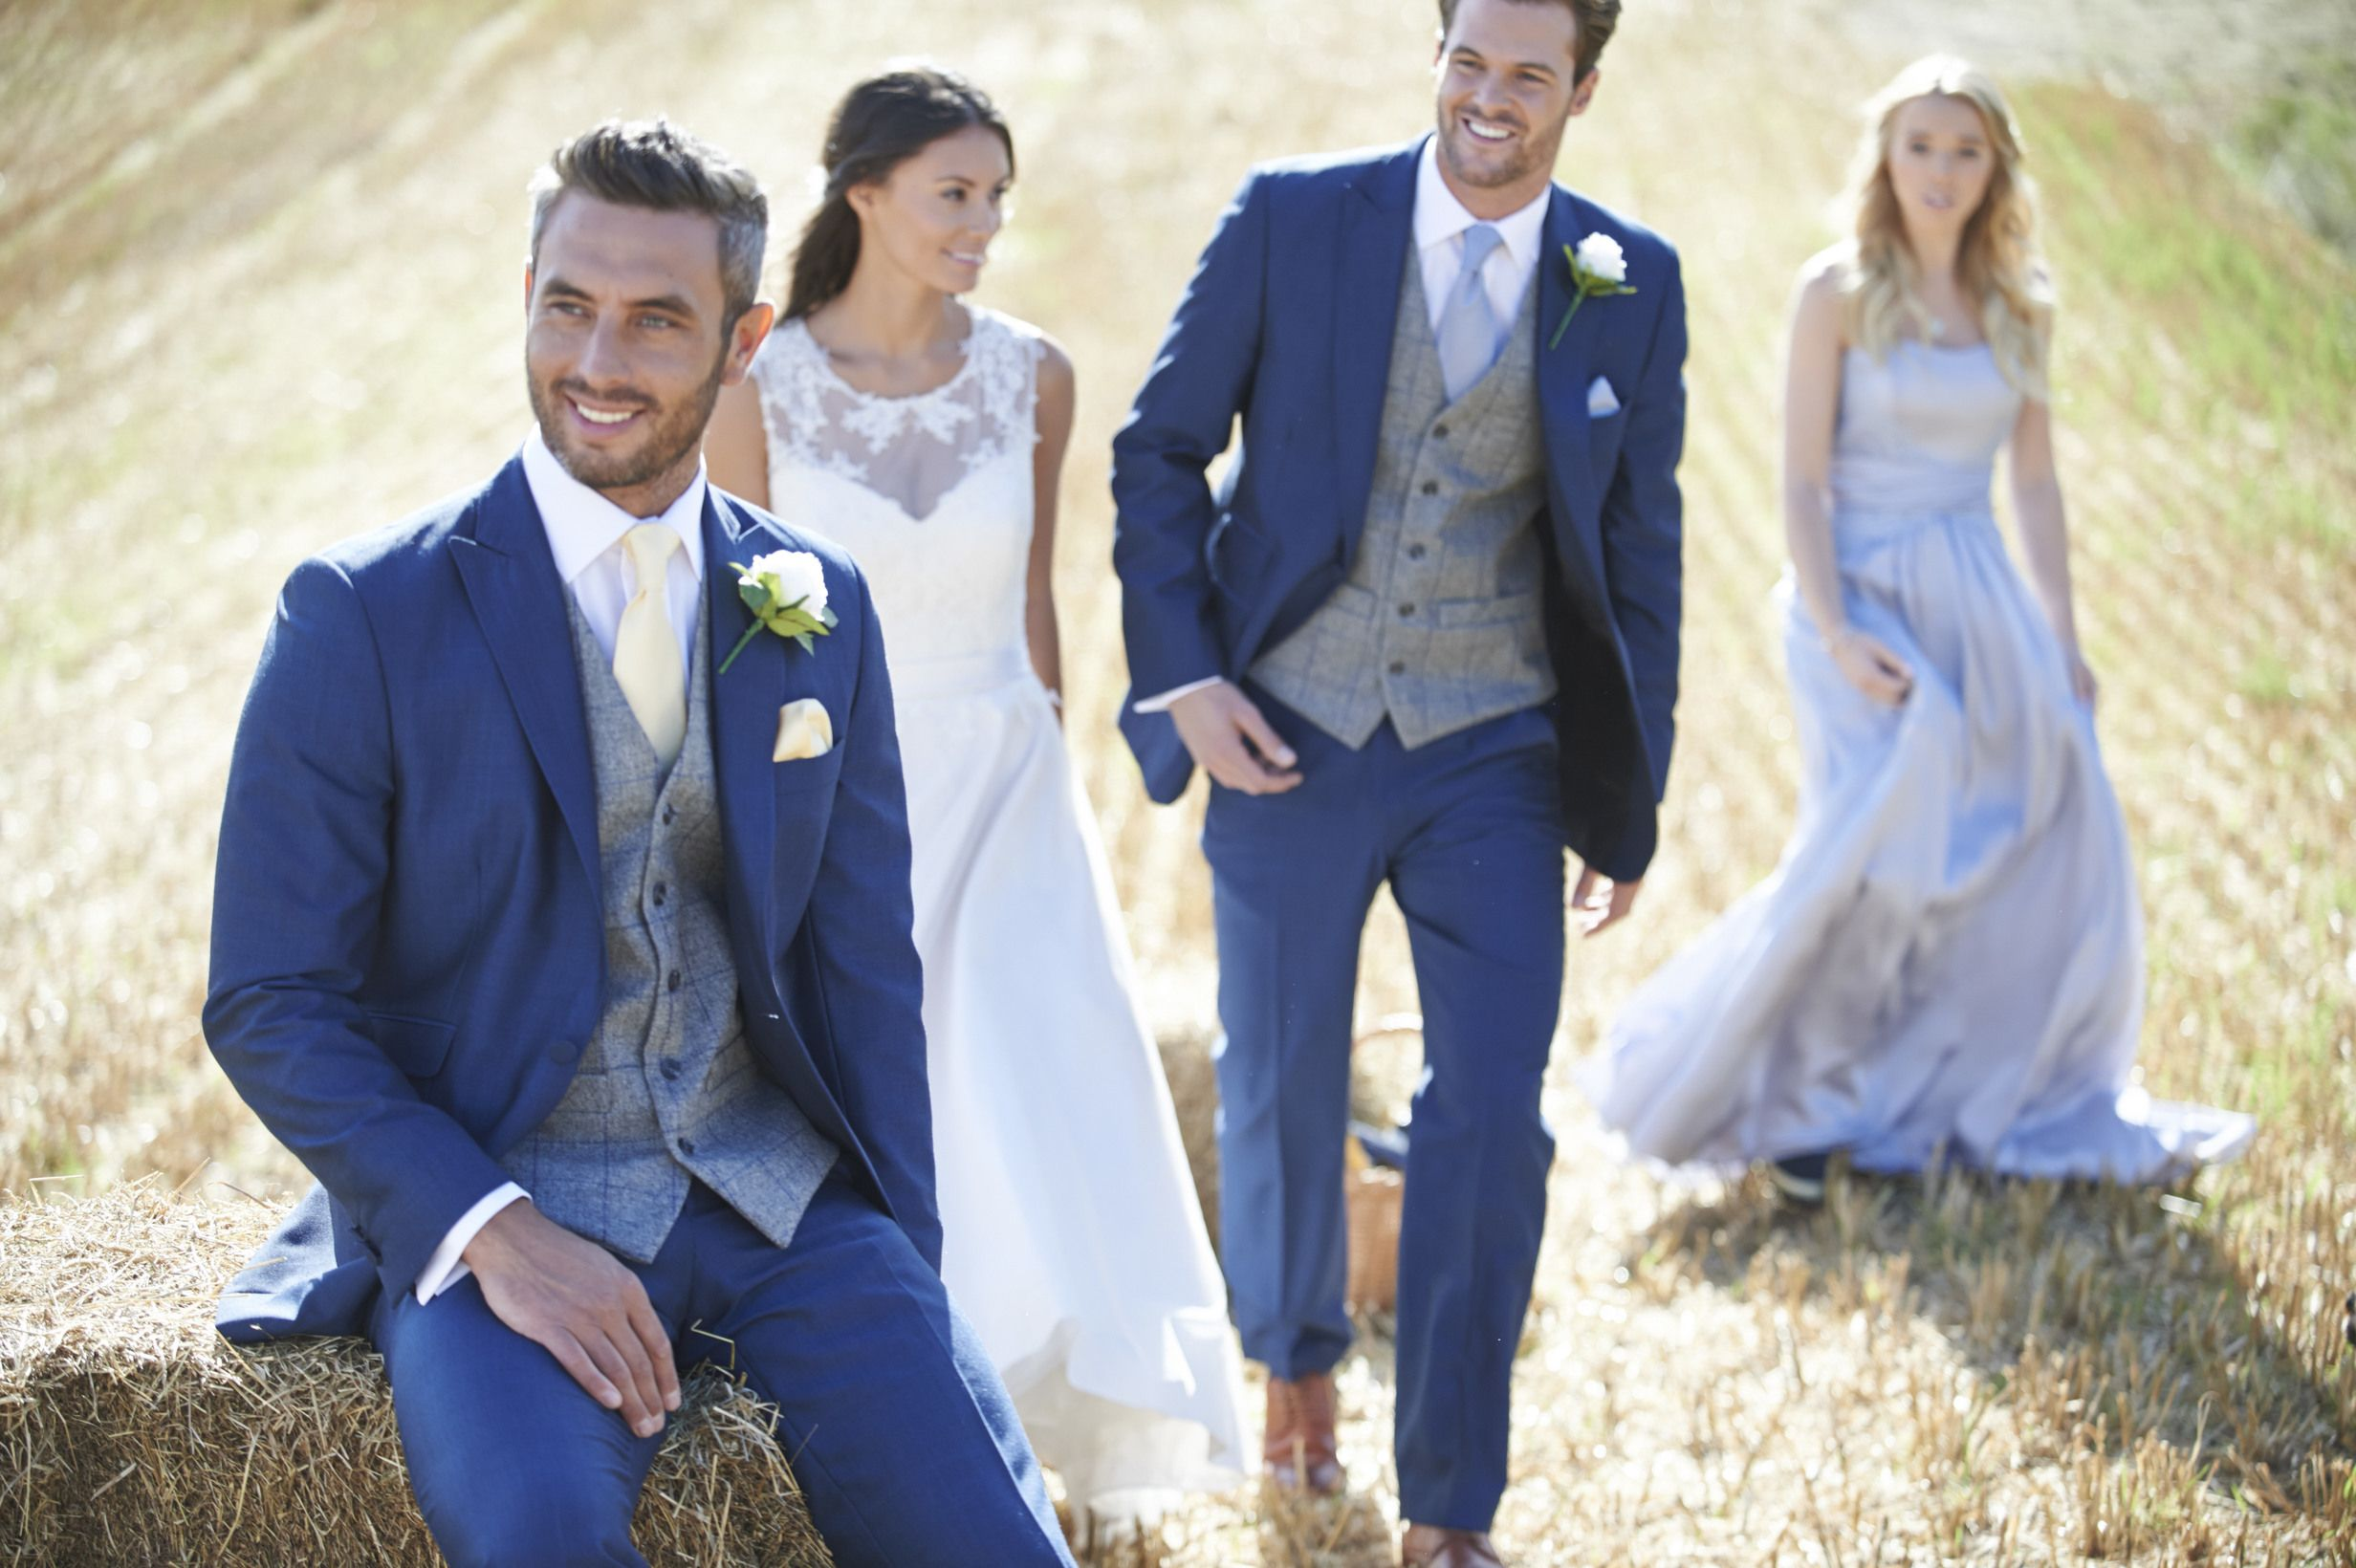 blue suit grey waistcoat - Google Search | Wedding research ...